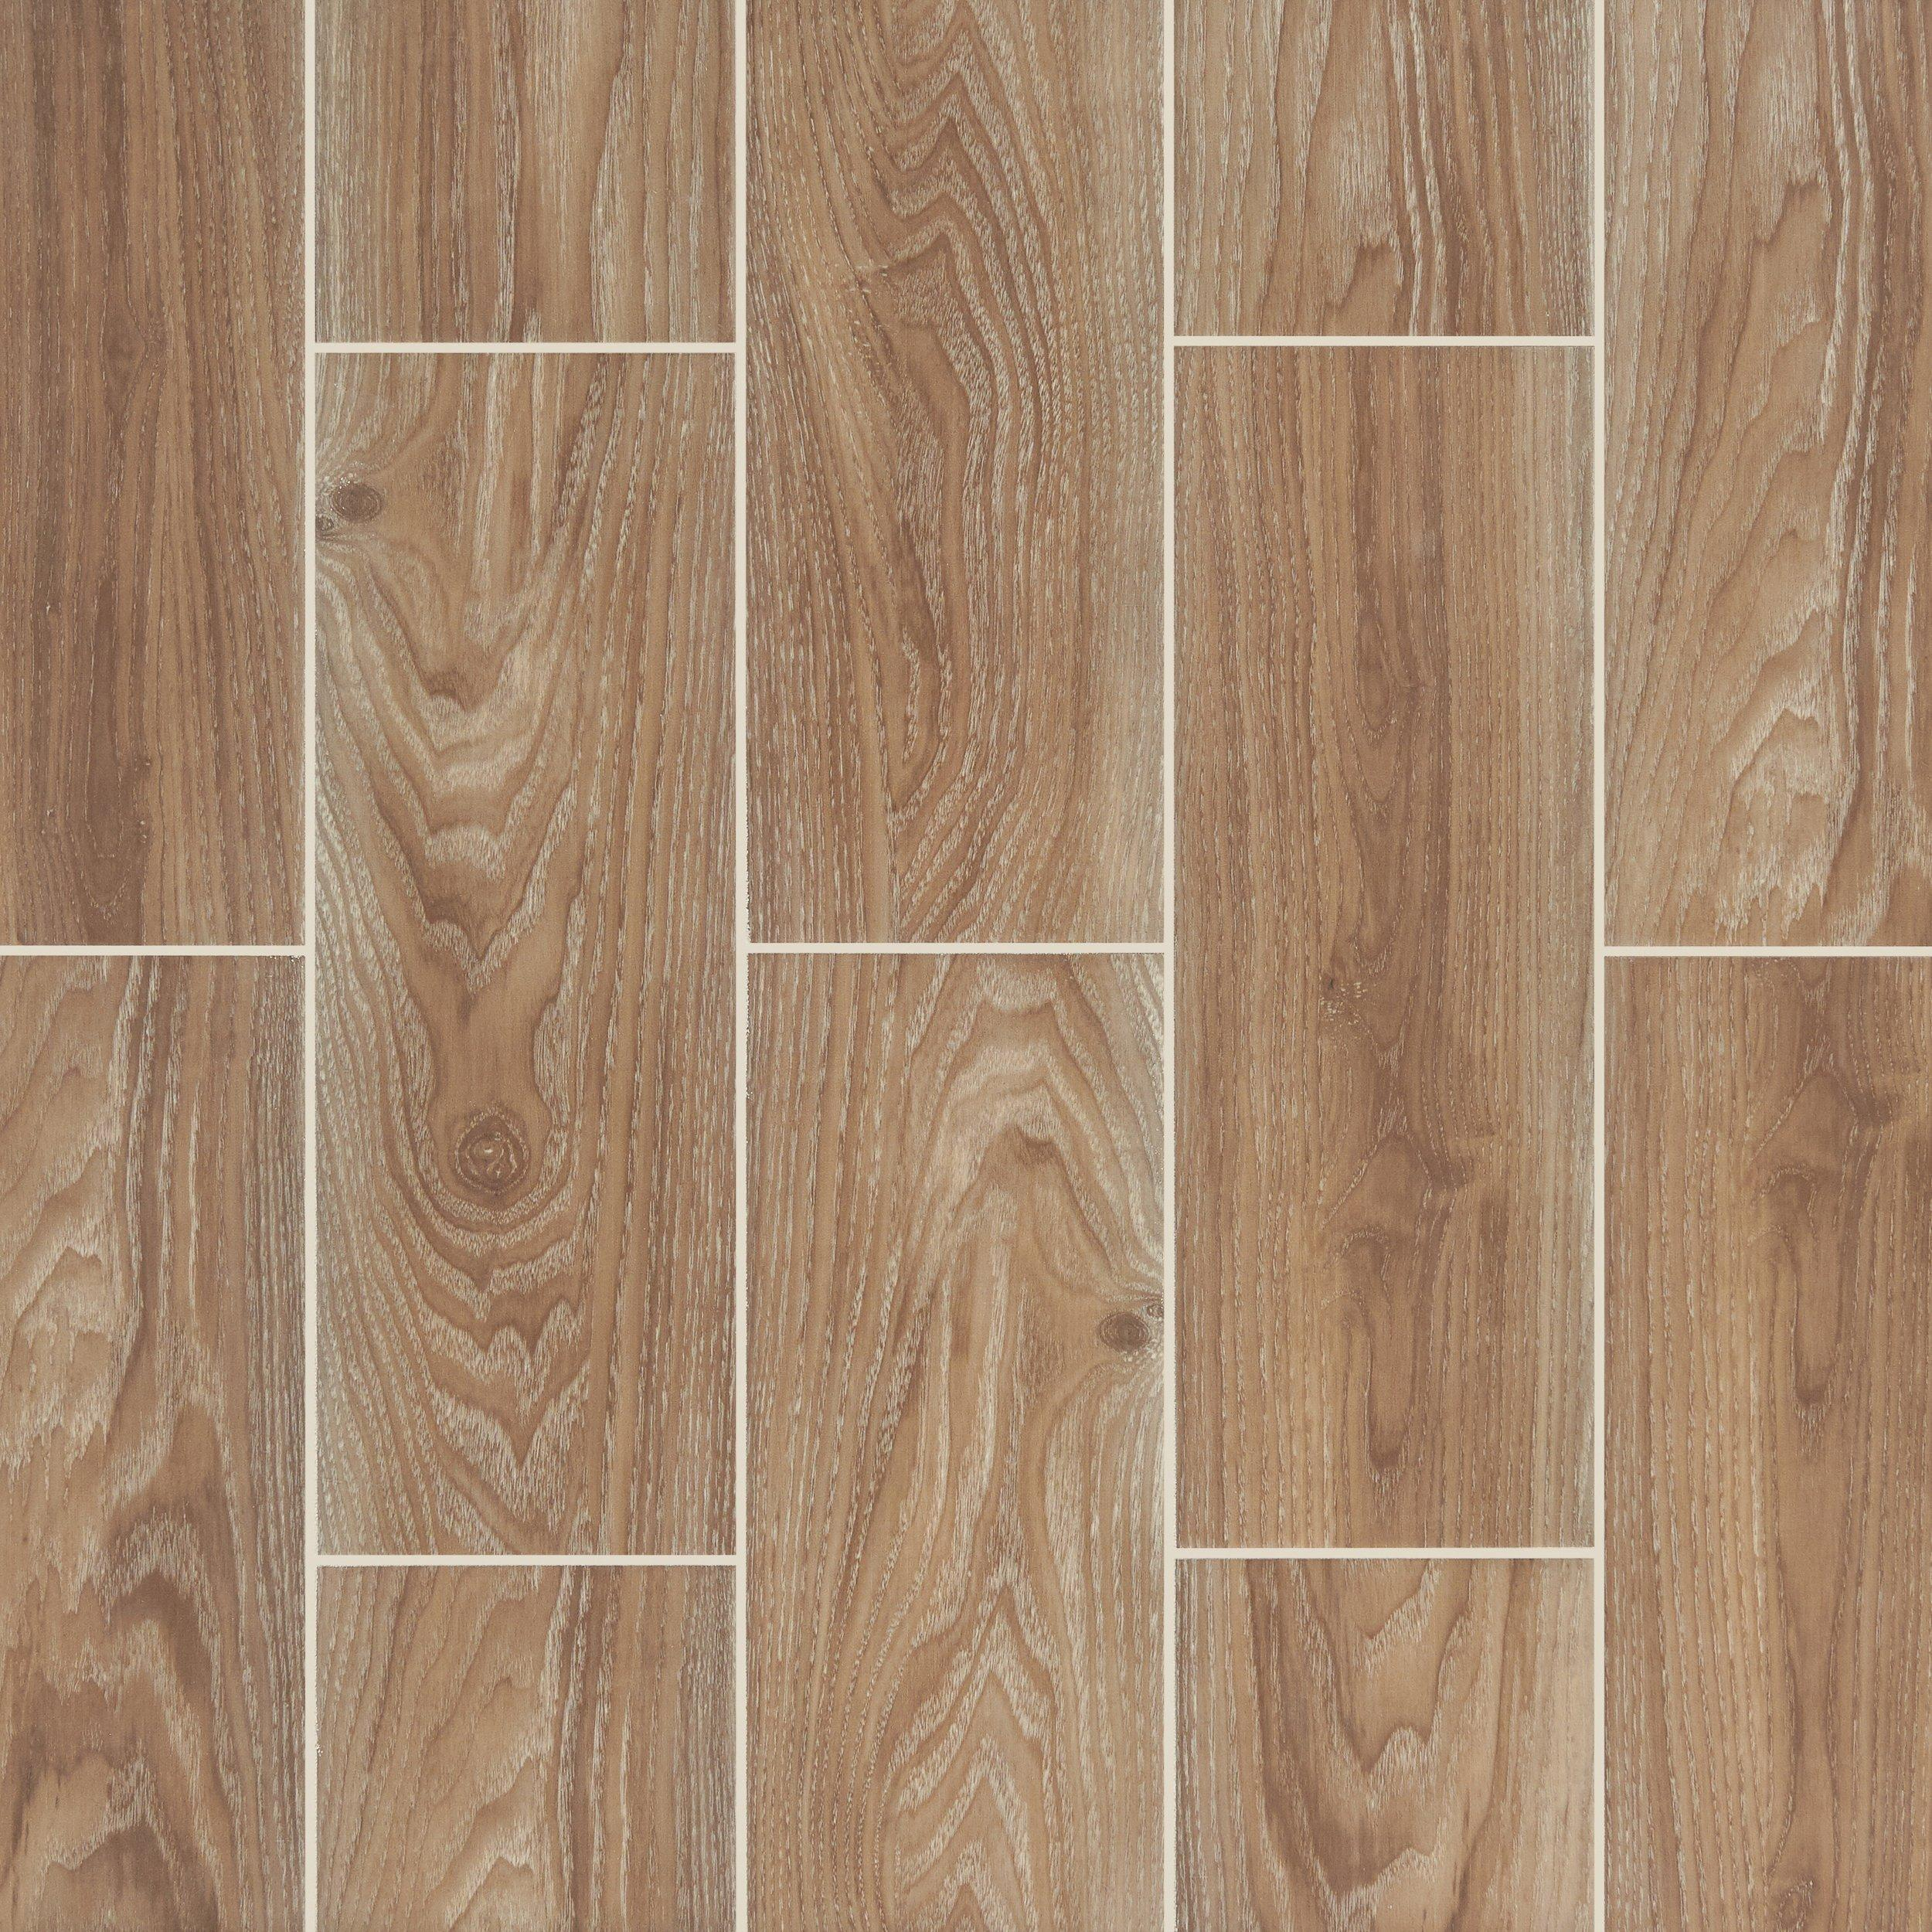 Cumberland Cafe Wood Plank Ceramic Tile Part 61